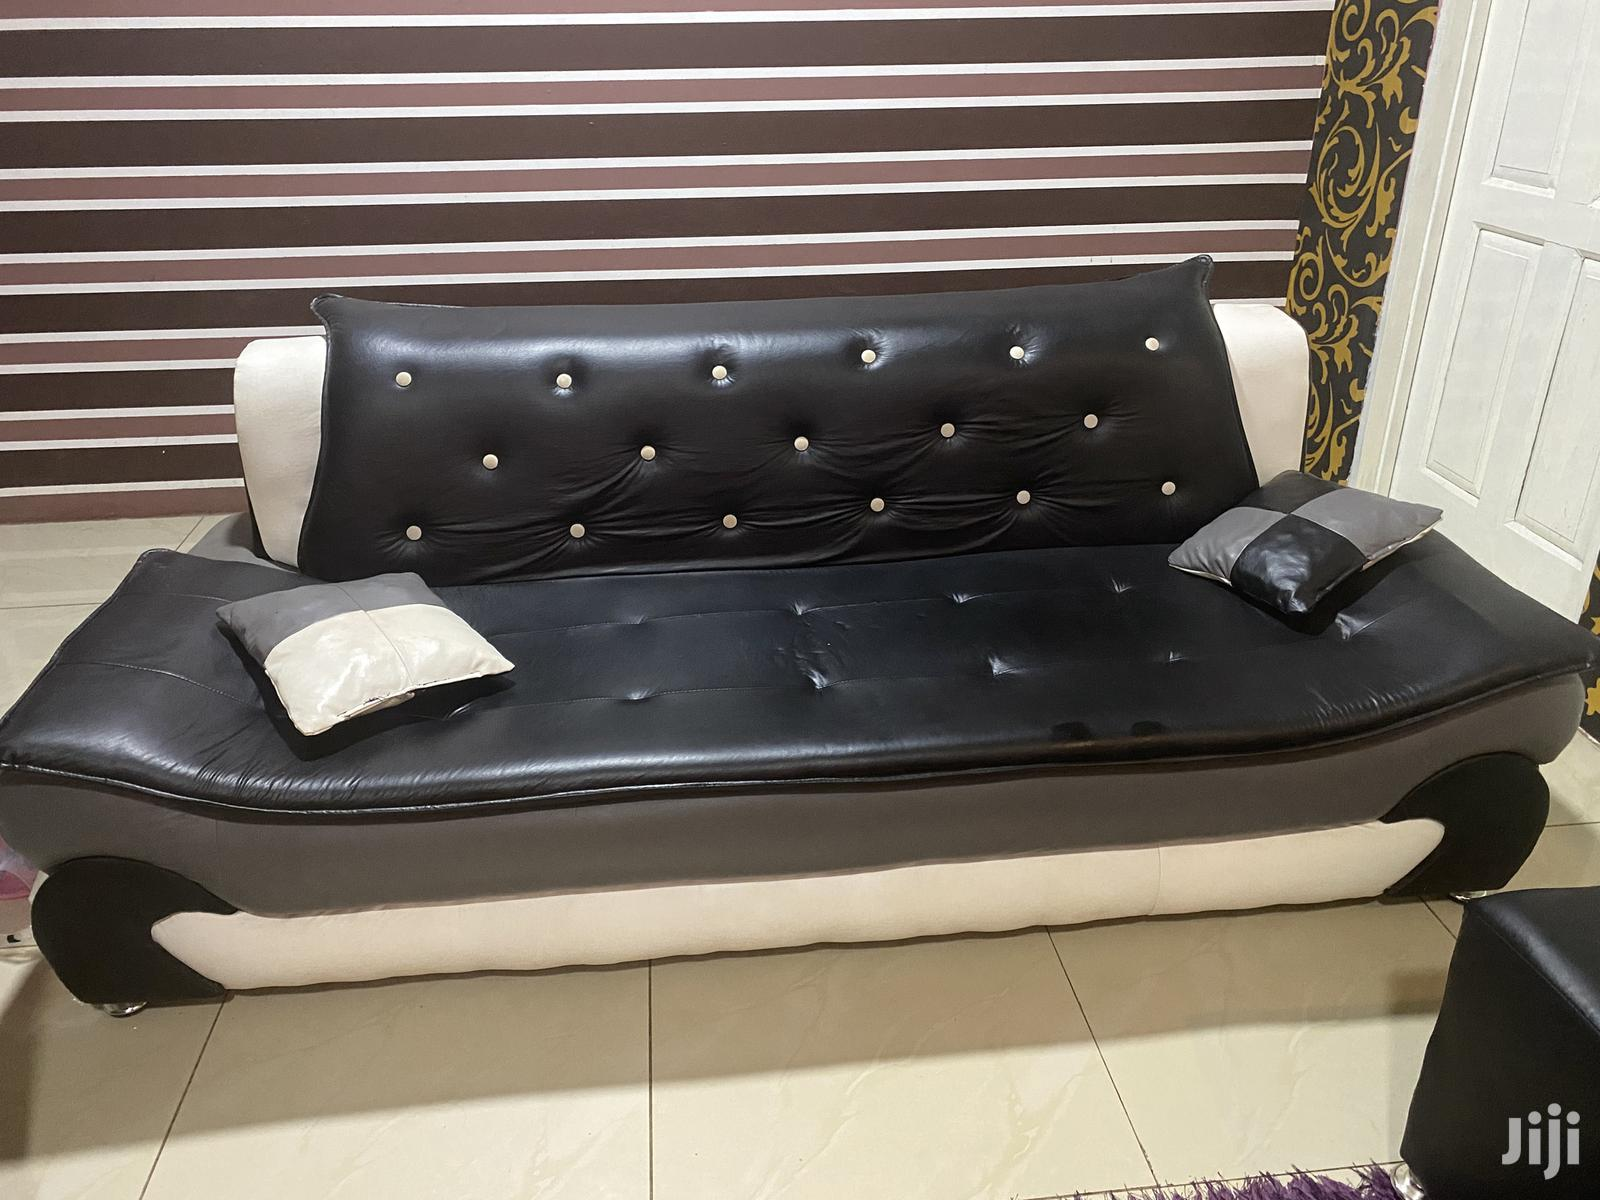 Slightly Used but Neat 3in1sofa ,2in1 Sofa With Center Table   Furniture for sale in East Legon, Greater Accra, Ghana